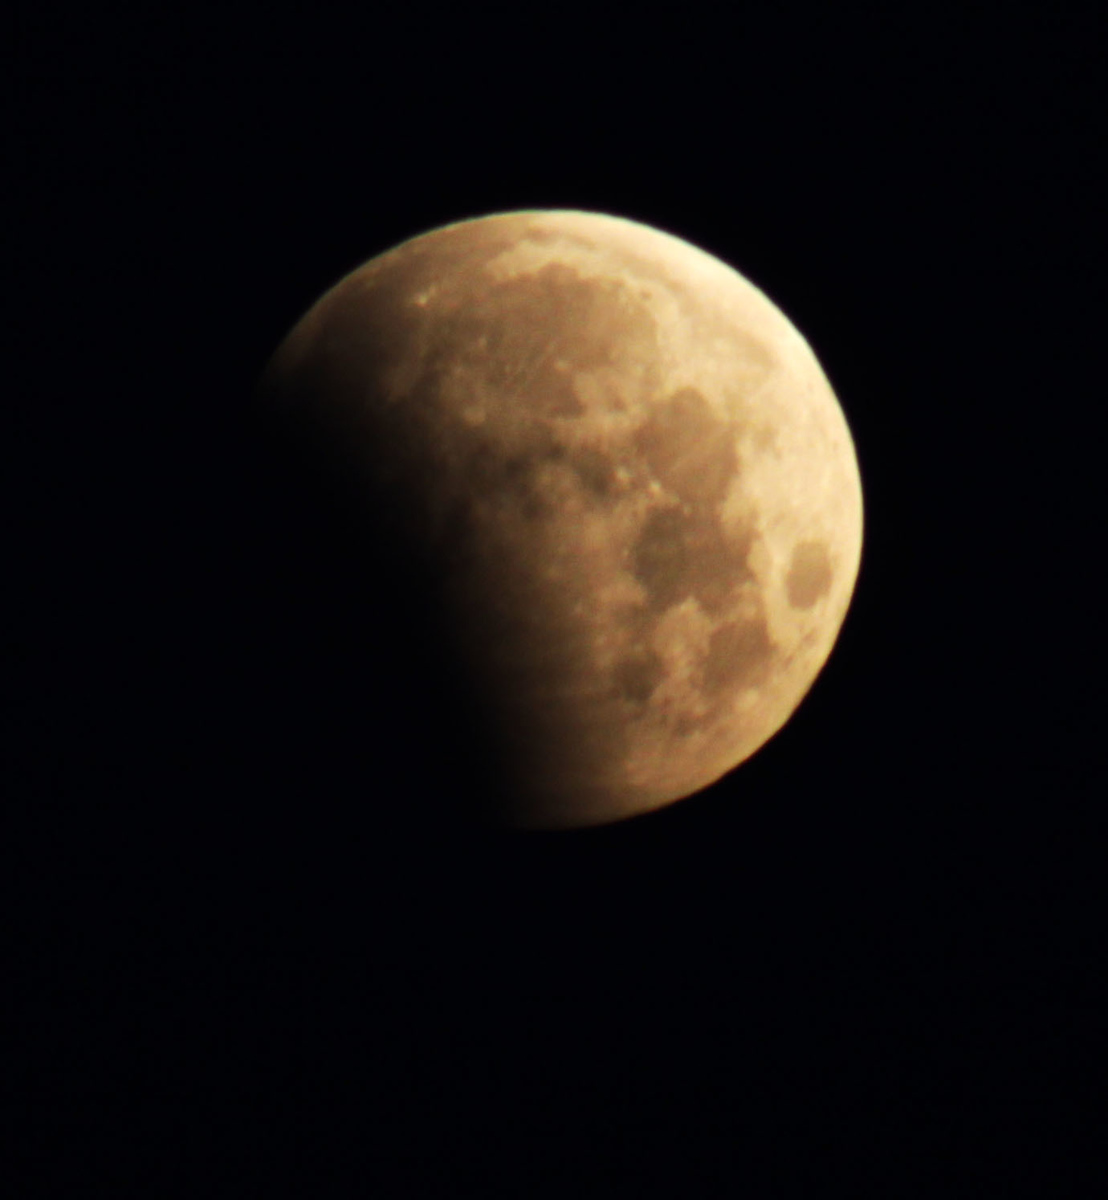 Here's the partial lunar eclipse on June 4, 2012, at 5:45 a.m CST